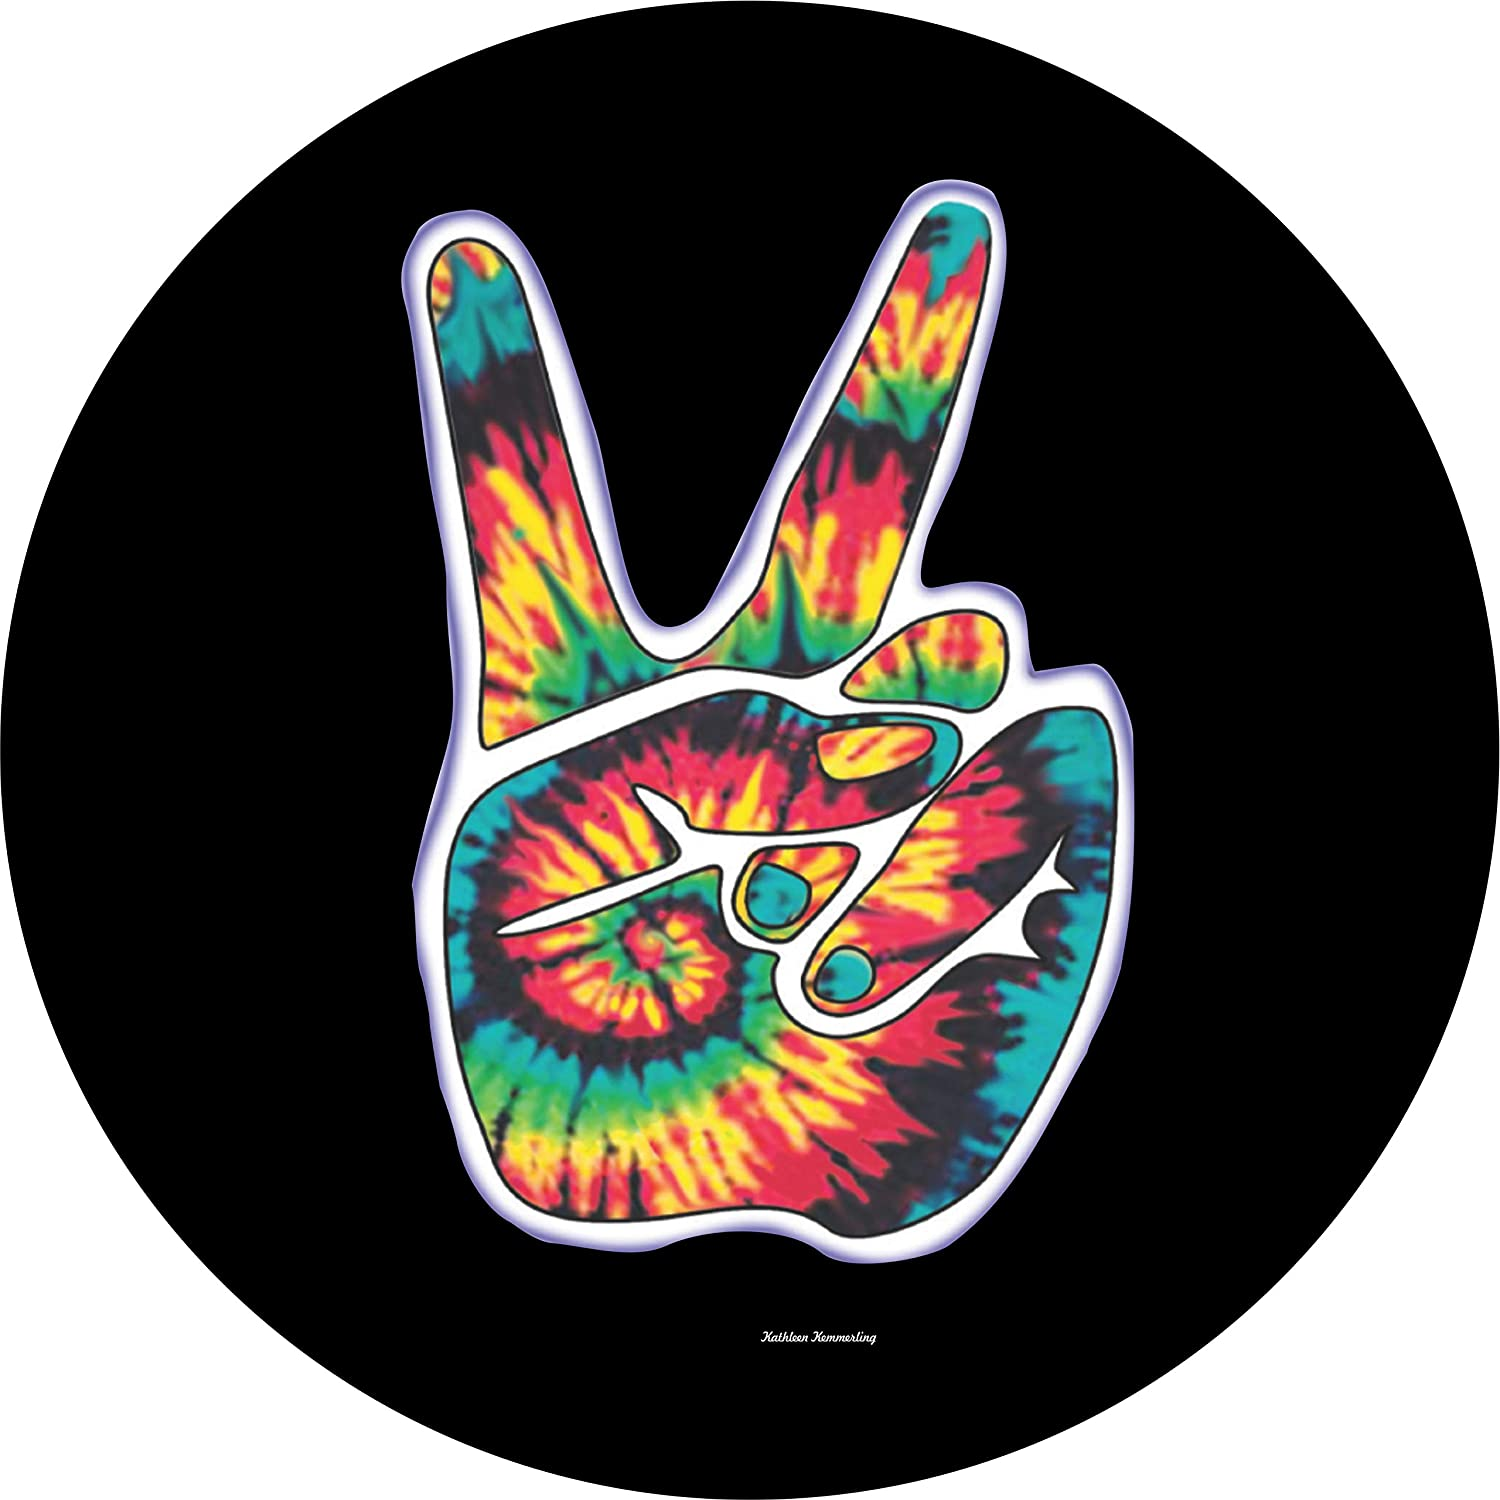 etc Trailer Drop Down Size menu TIRE COVER CENTRAL Peace Sign Hand Tie dye on Black Spare Tire Cover for 225//75R16 fits Camper Jeep rv